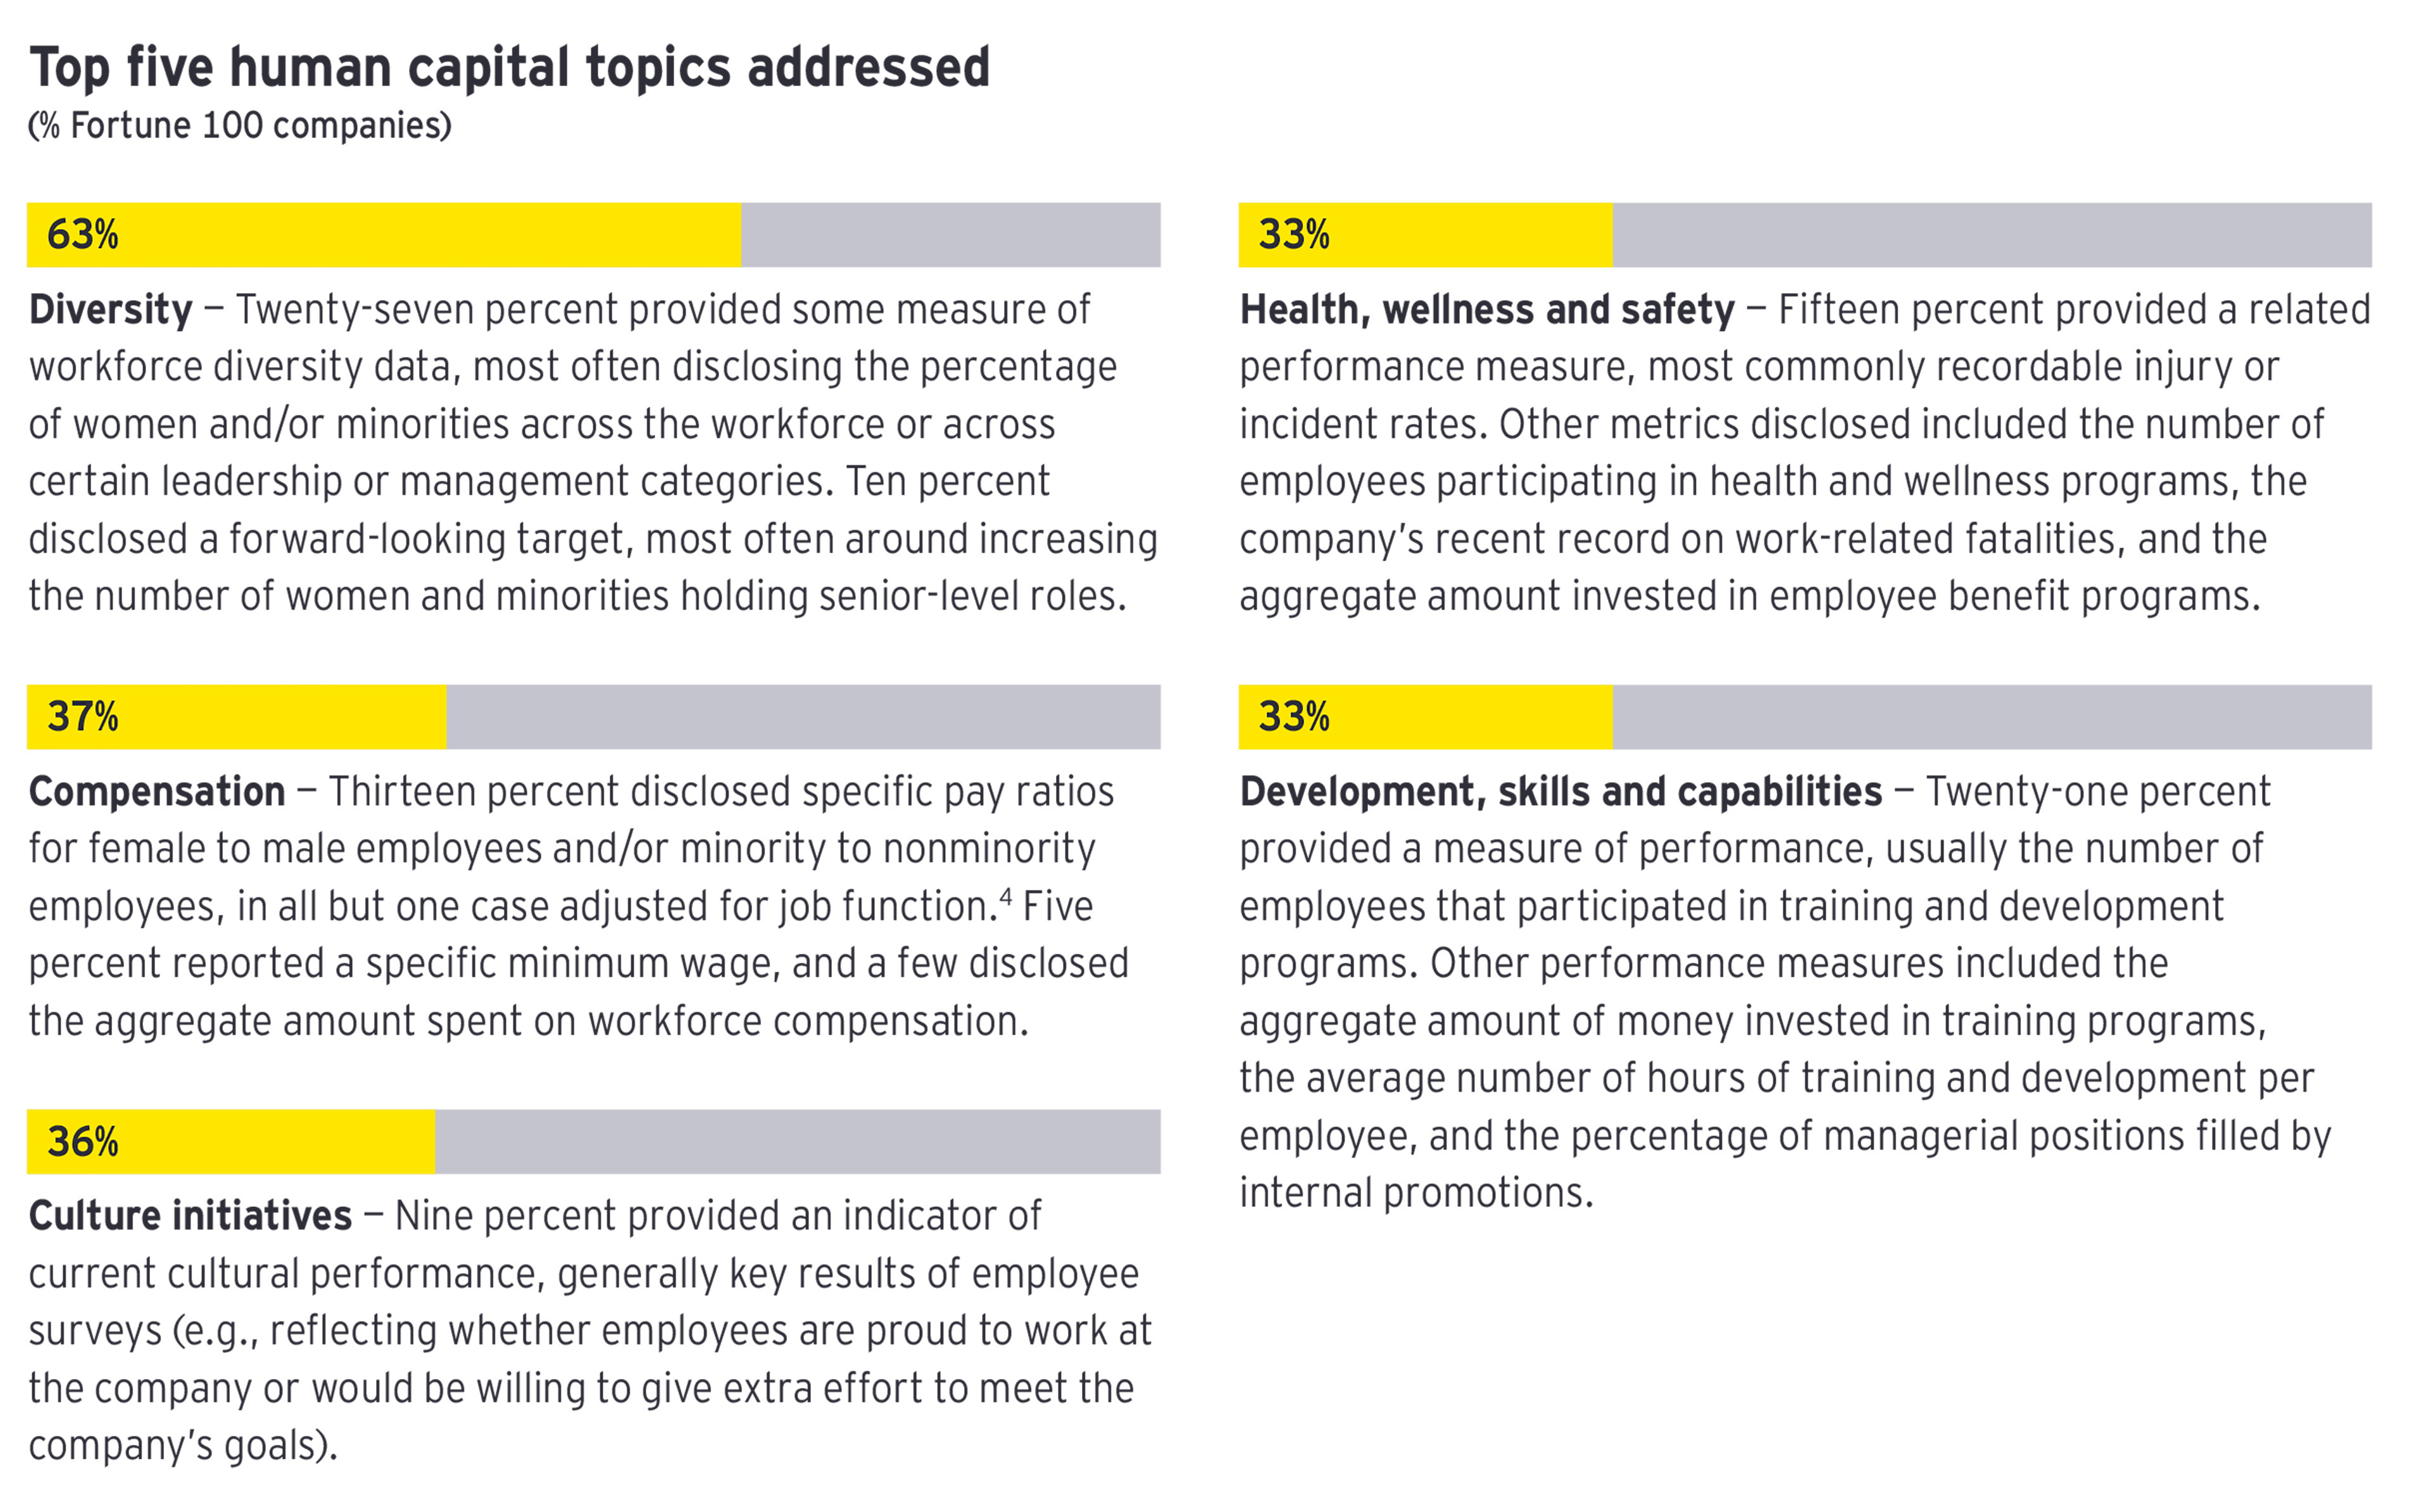 EY - Human capital topics addressed v2